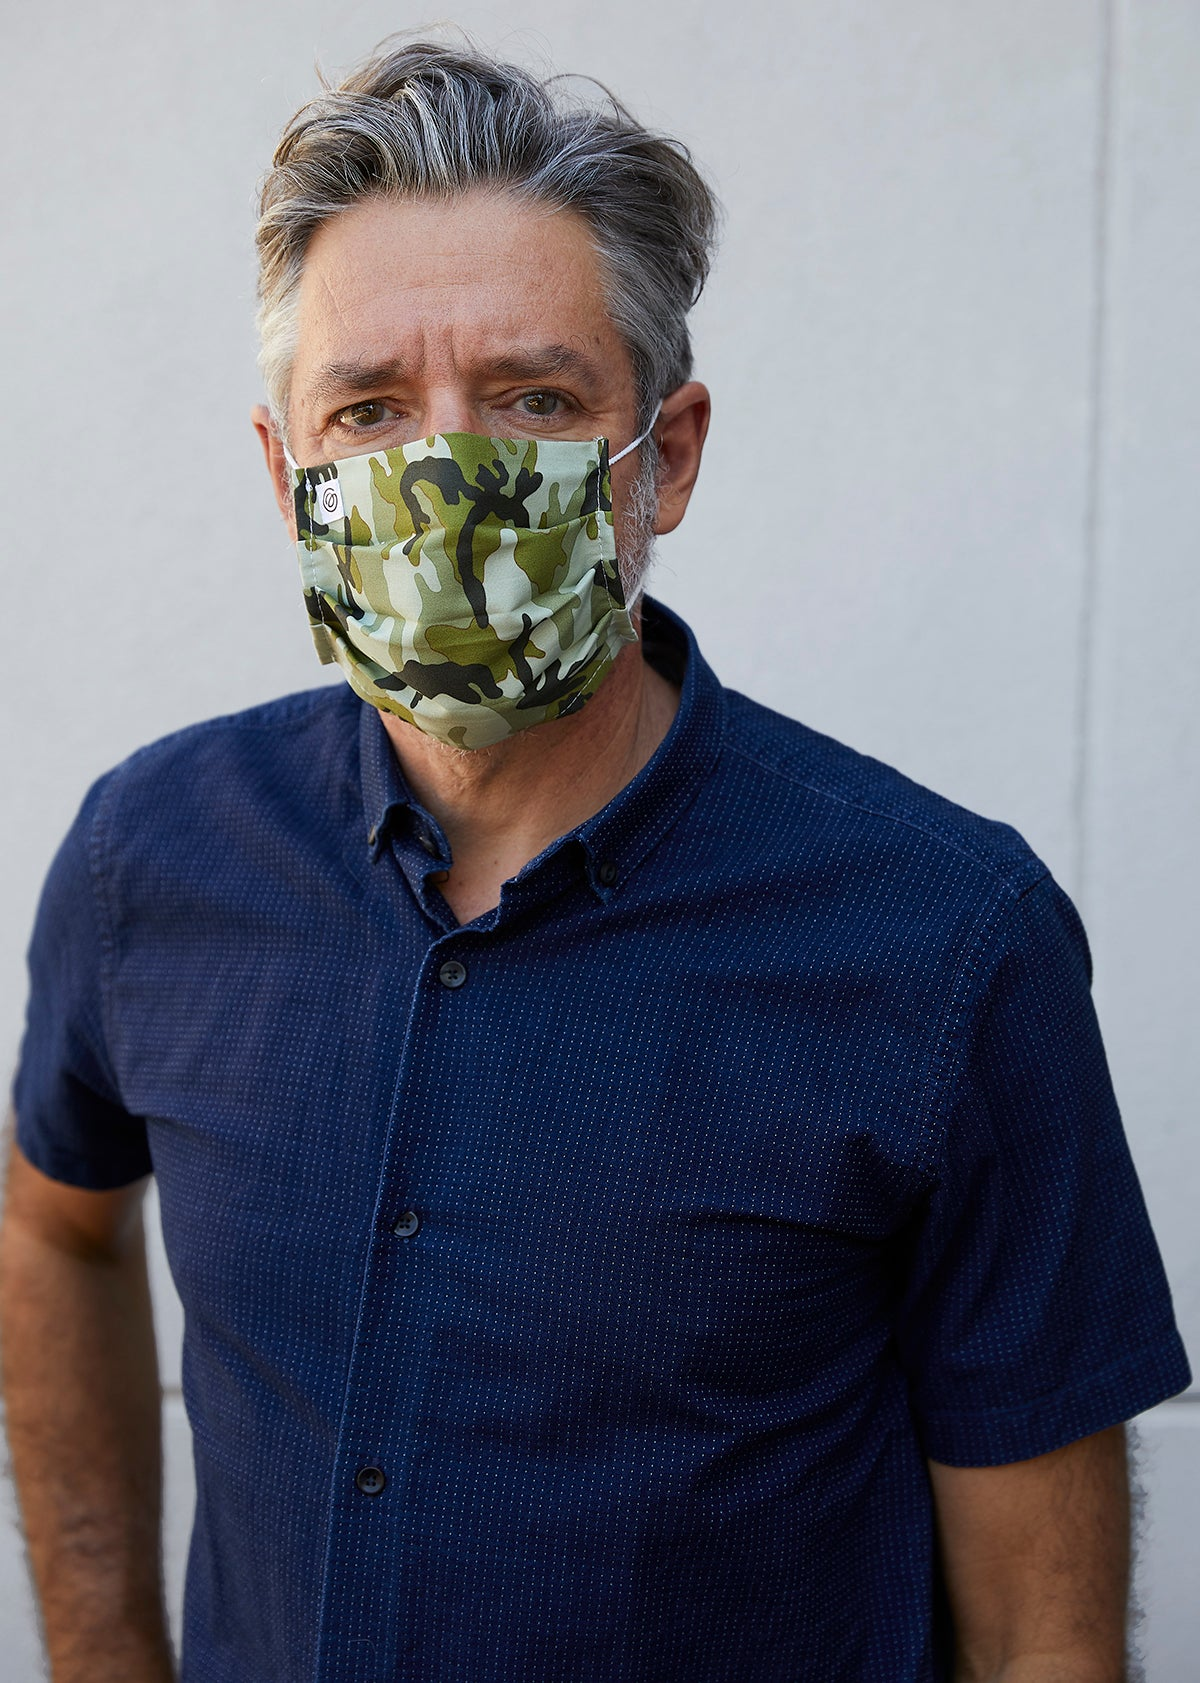 Easy Mask Pleated - Green Camo